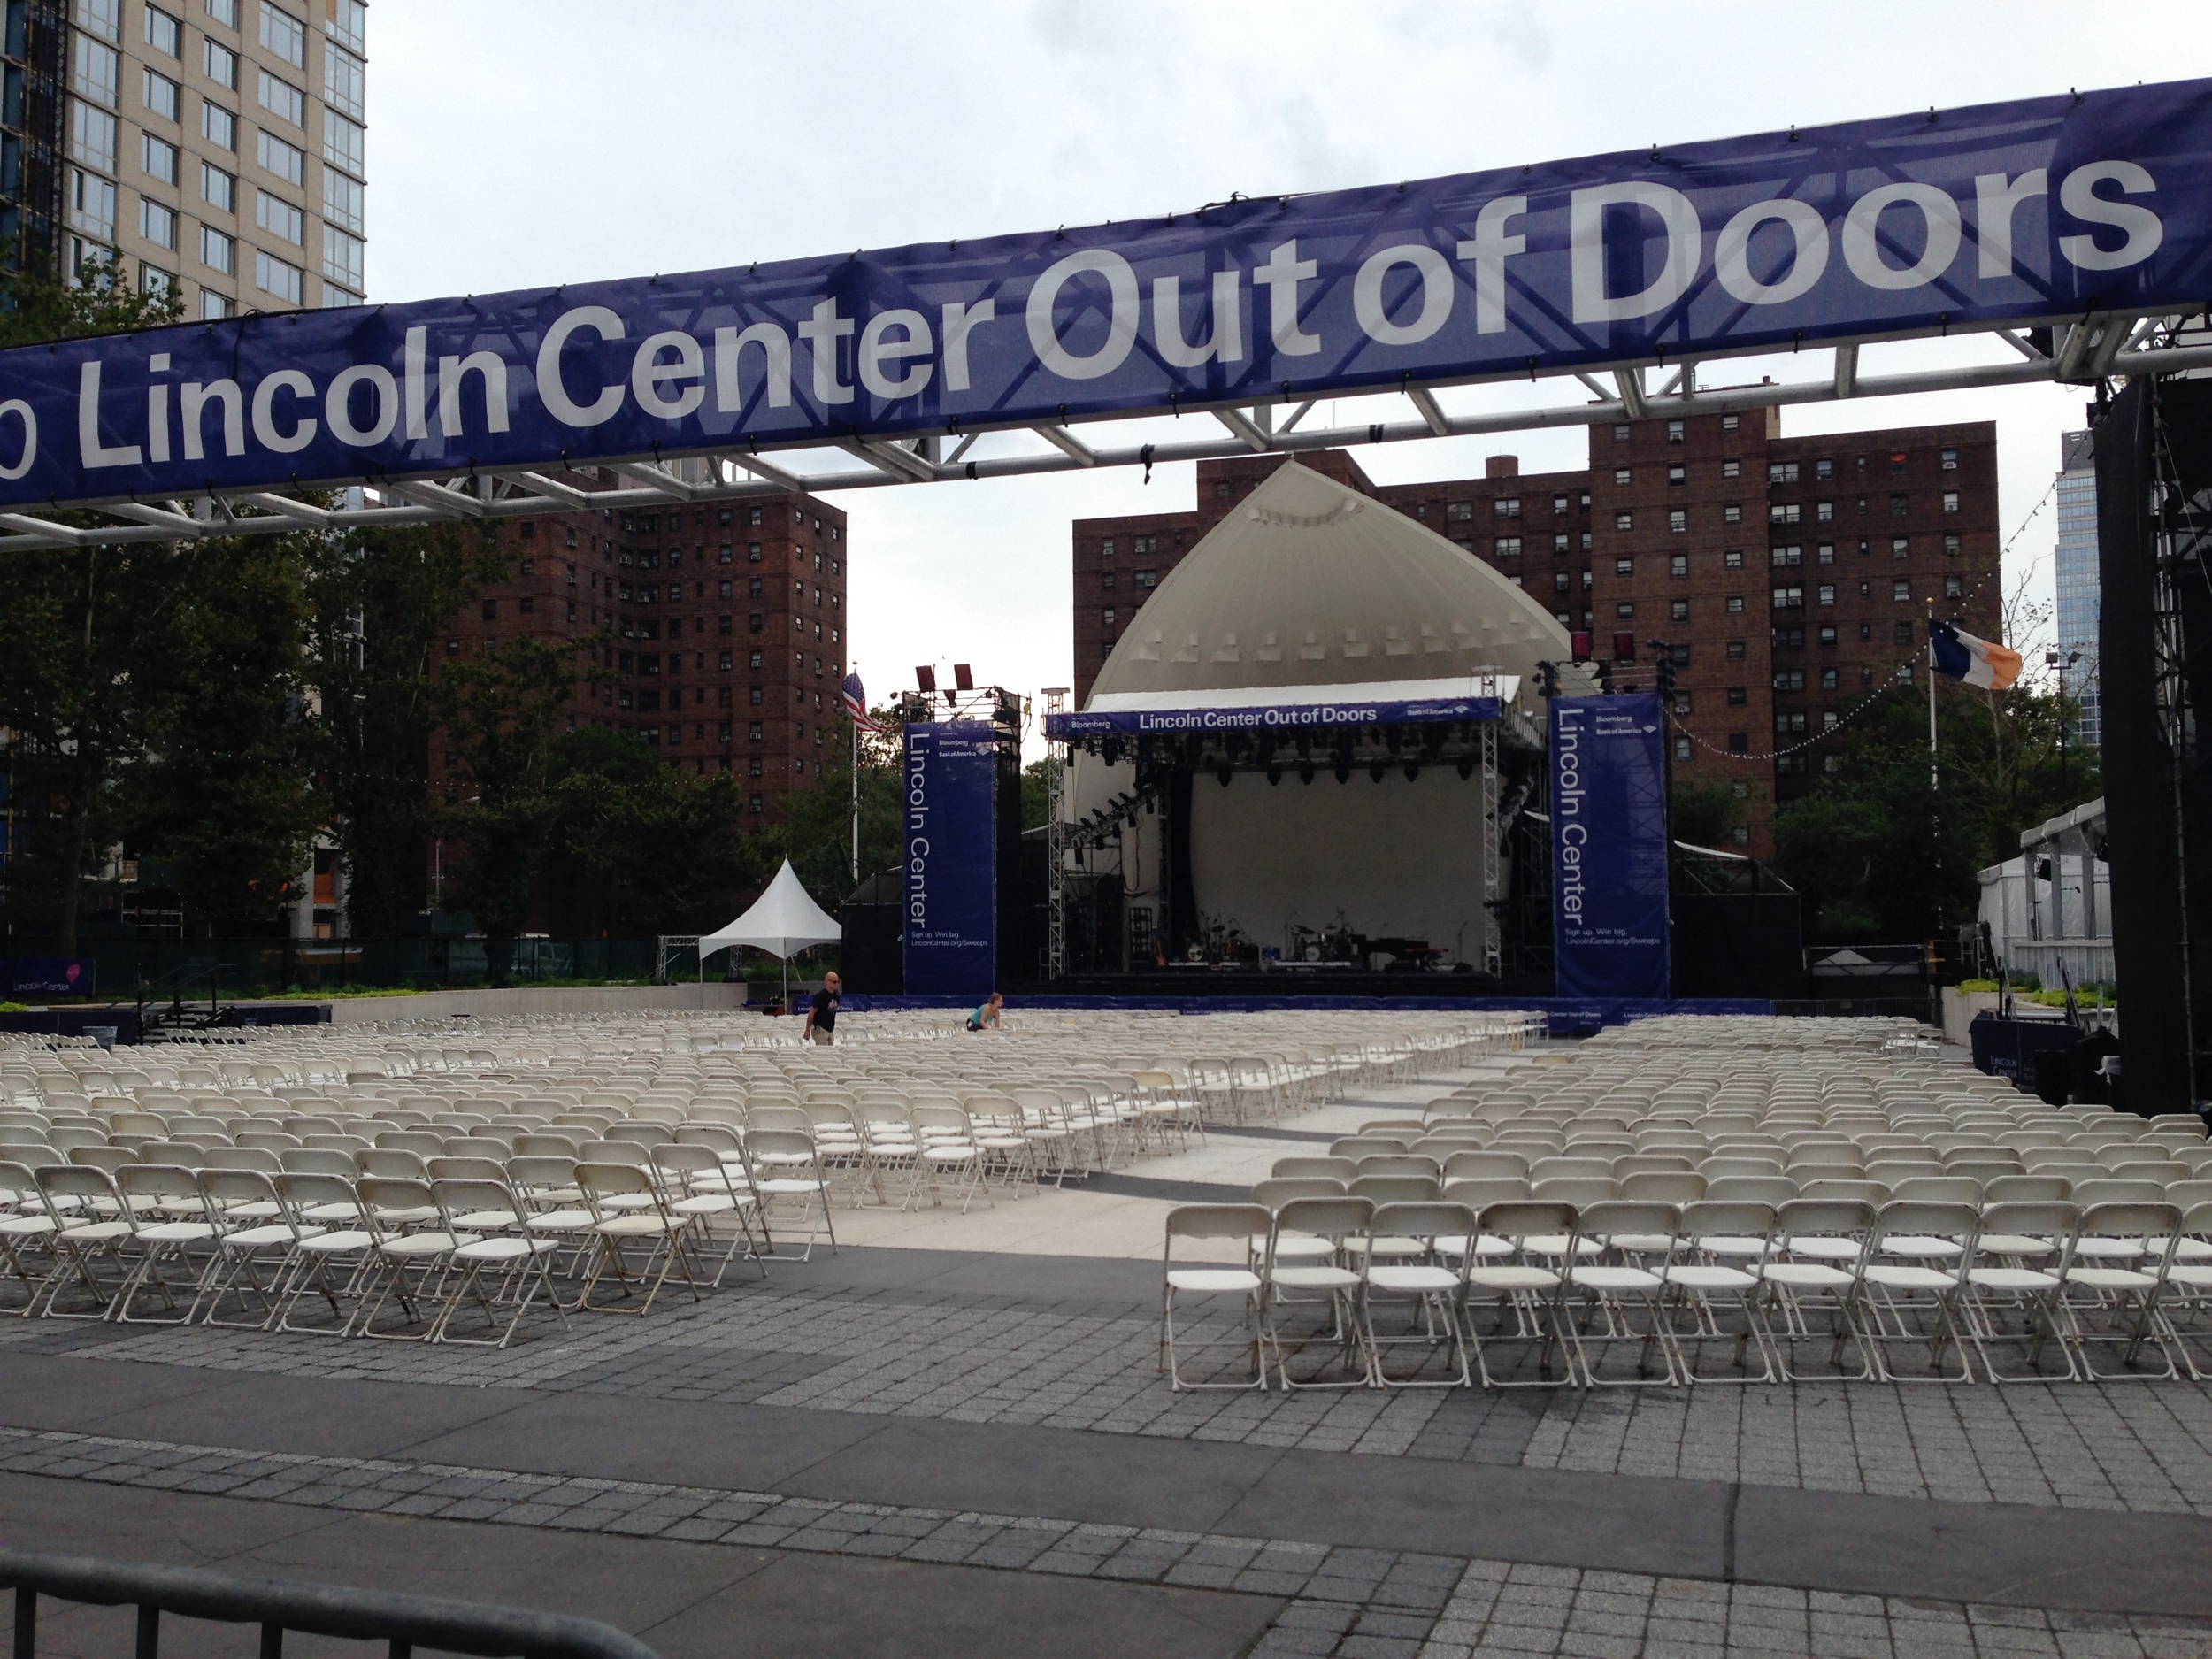 Lincoln Center Outdoors where I played with Nation Beat